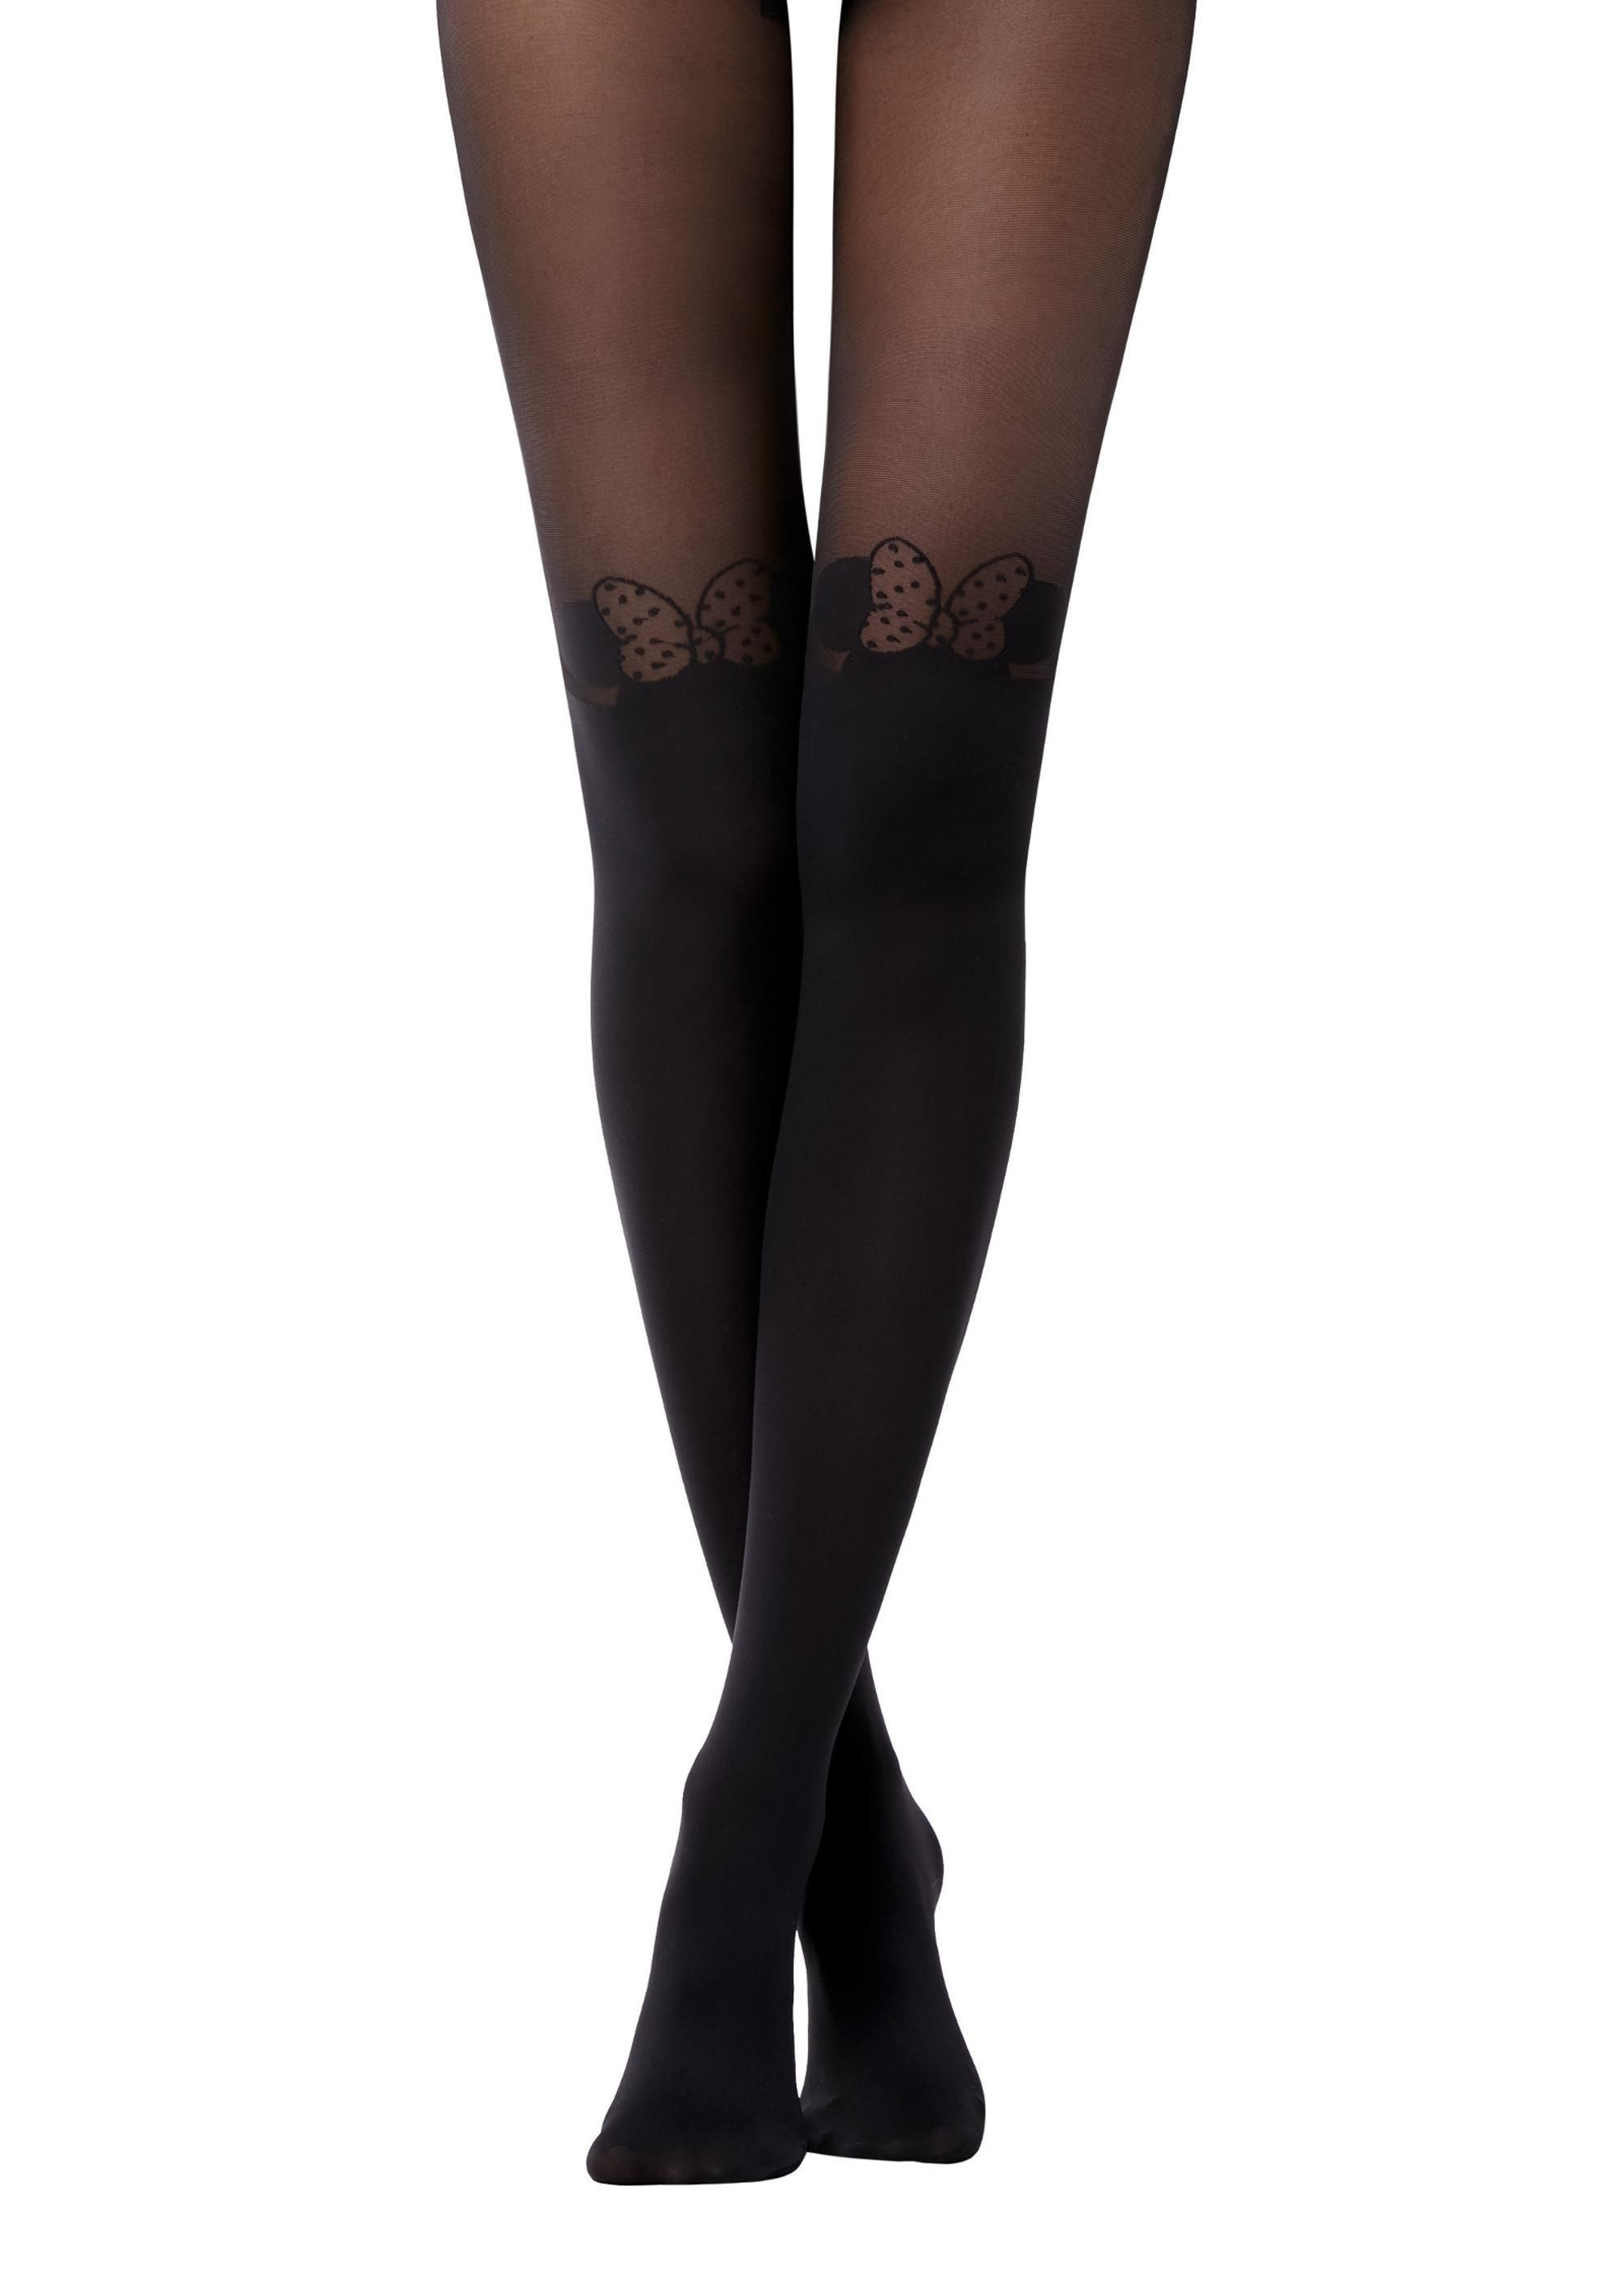 Dishini Sexy Leg Stocking - Fashion tights Full Leg Stocking - Da2104